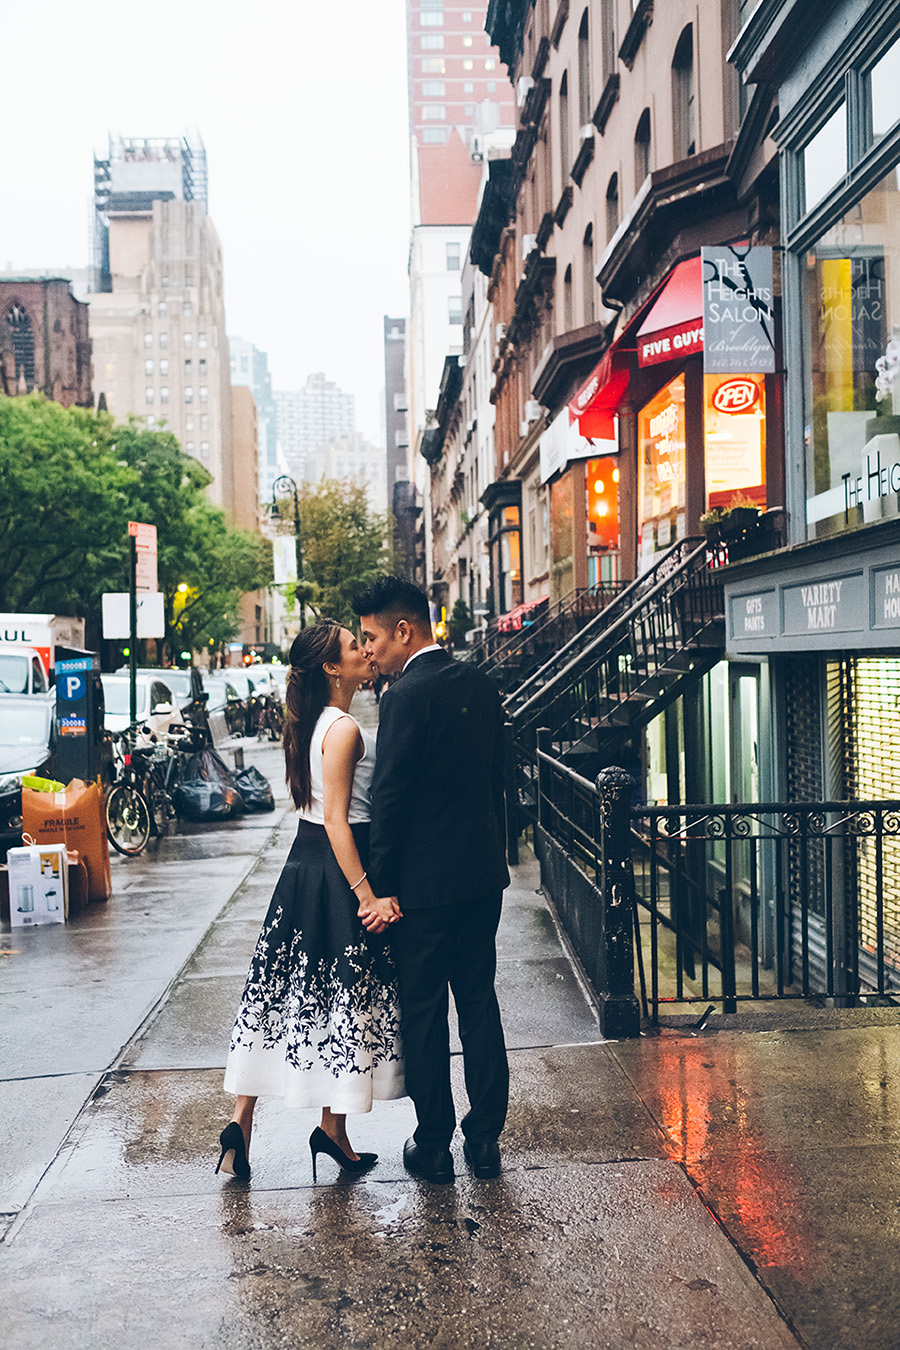 NEW-YORK-CITY-WEDDING-PHOTOGRAPHER-INTIMATE-WEDDING-ELOPEMENT-BROOKLYN-PROMENADE-CITYHALL-MANHATTAN-BROOKLYN-WEDDING-PHOTOGRAPHY-JackieAaron-0055.jpg